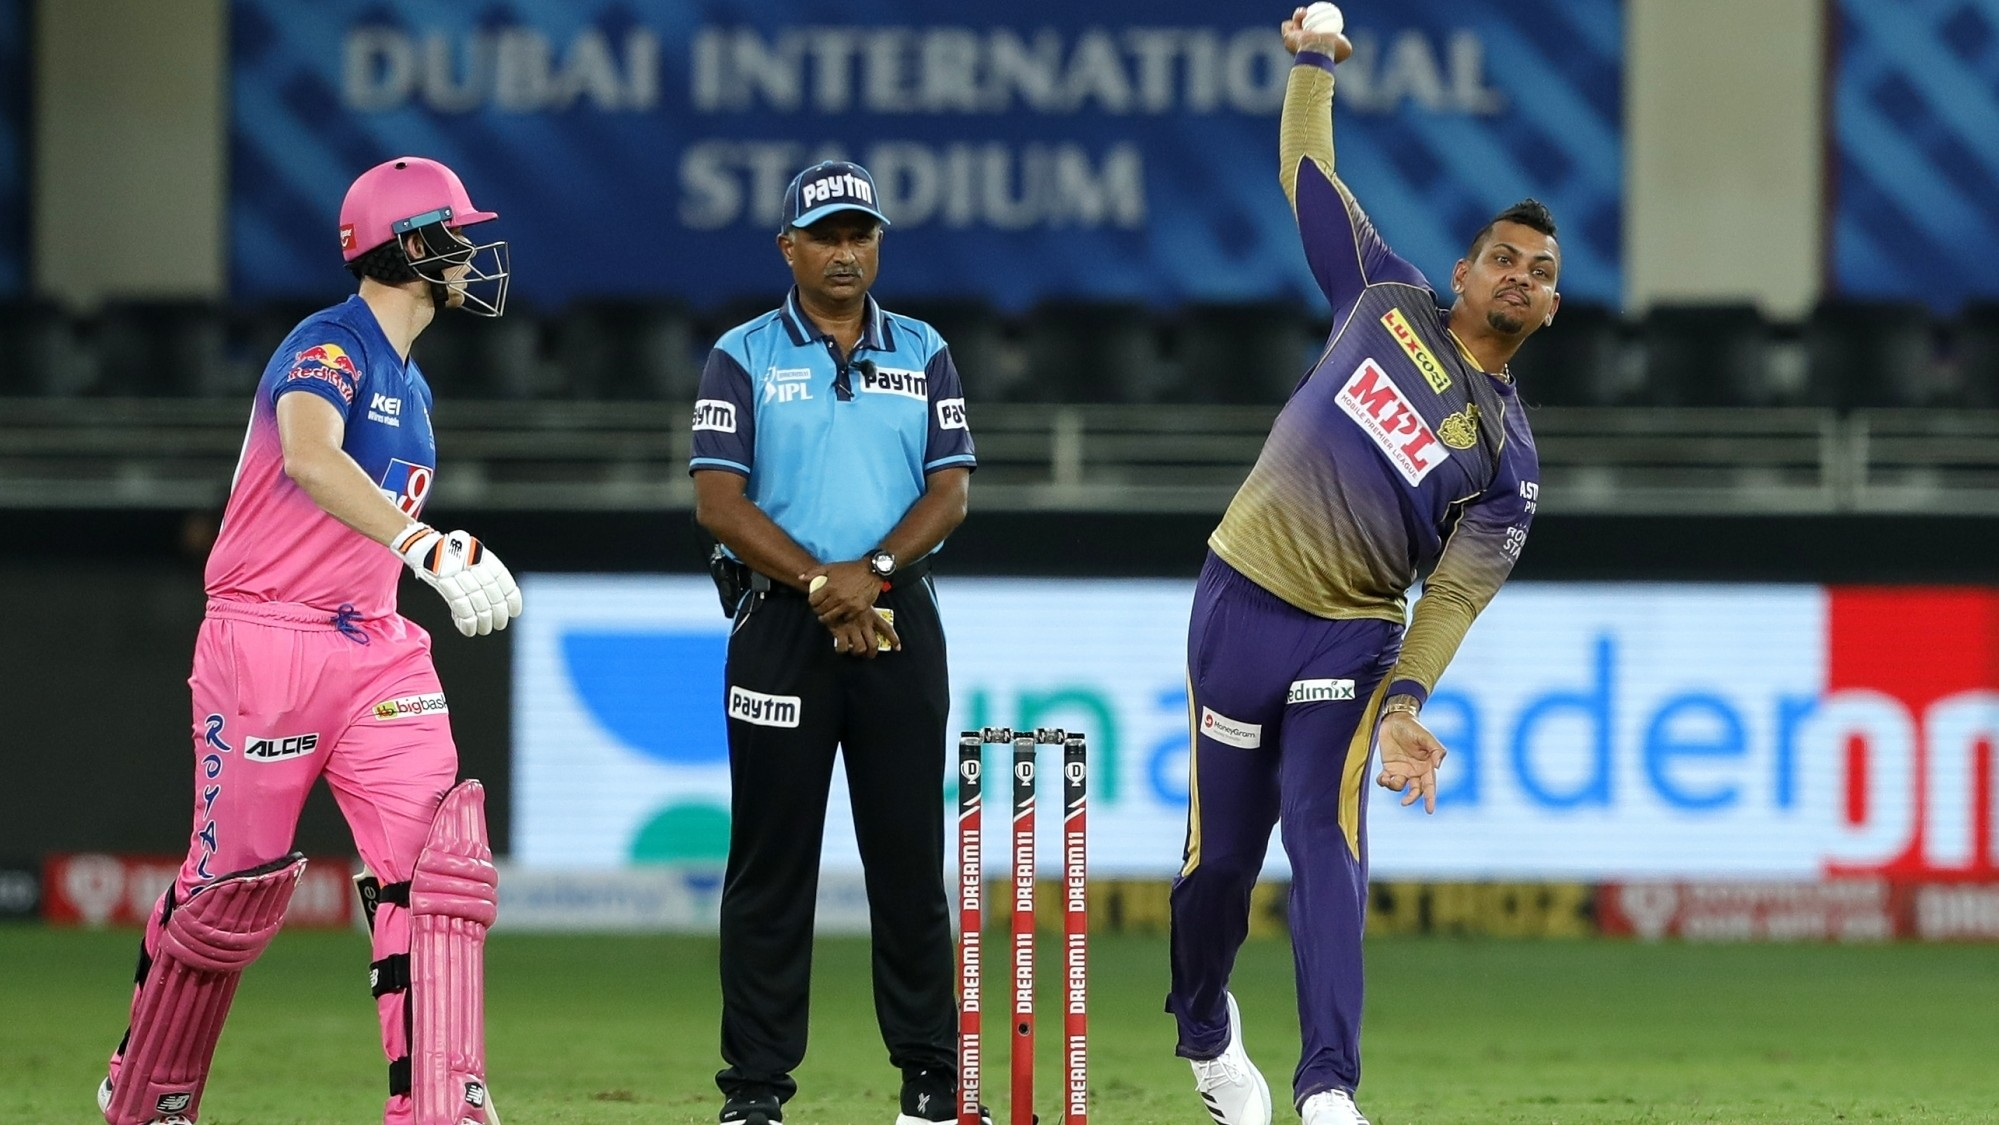 IPL 2020: Sunil Narine reported for suspect bowling action, placed in 'warning list'